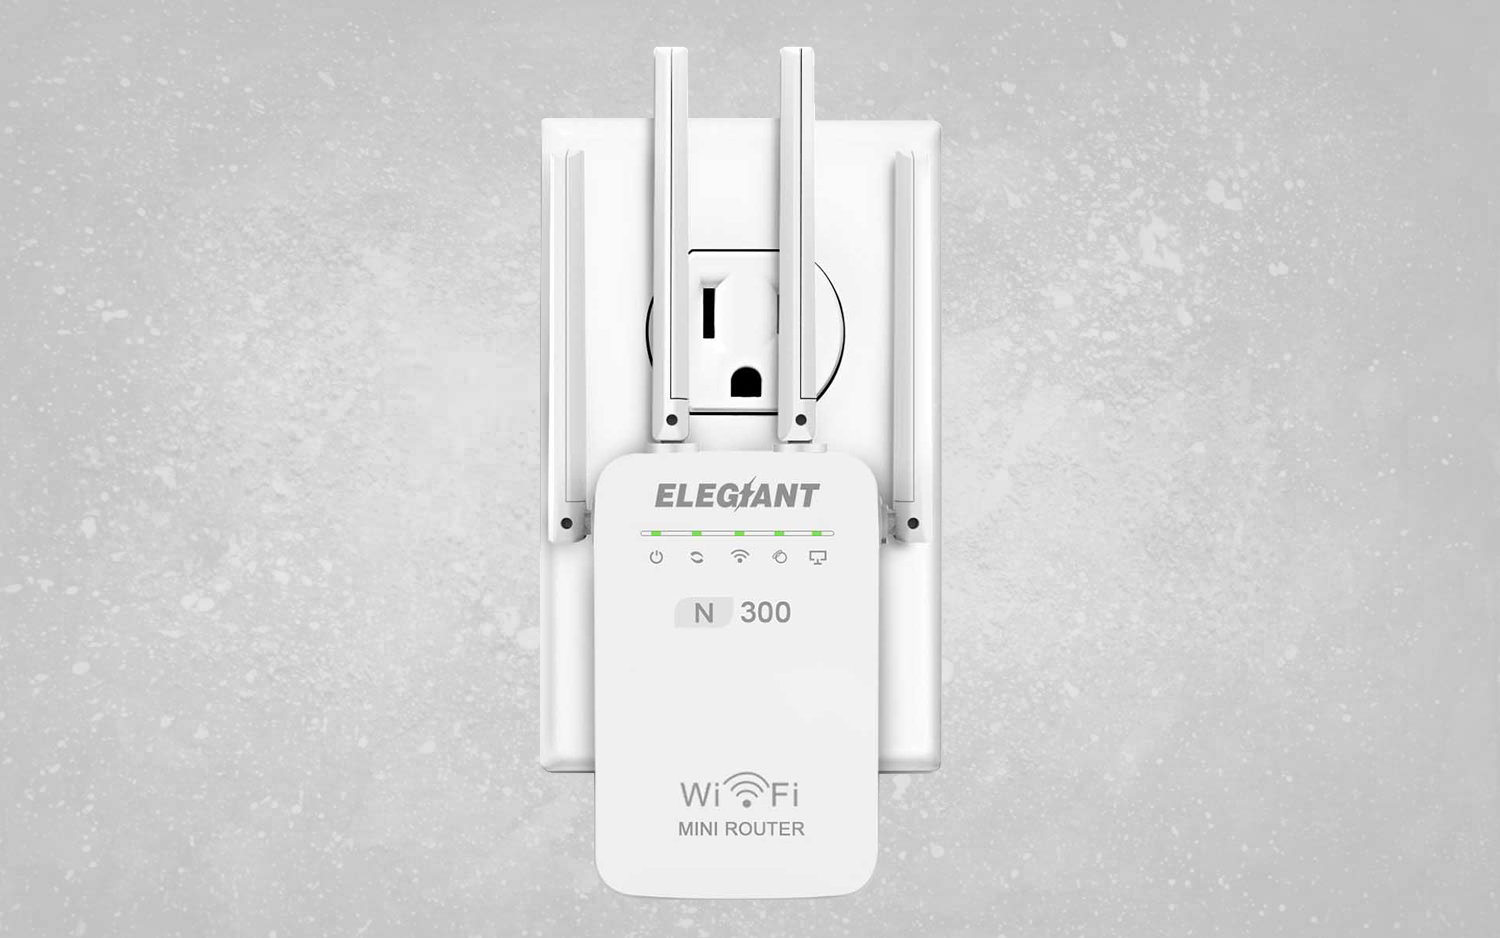 Elegiant LV-WR09 Wi-Fi Extender - Full Review and Benchmarks